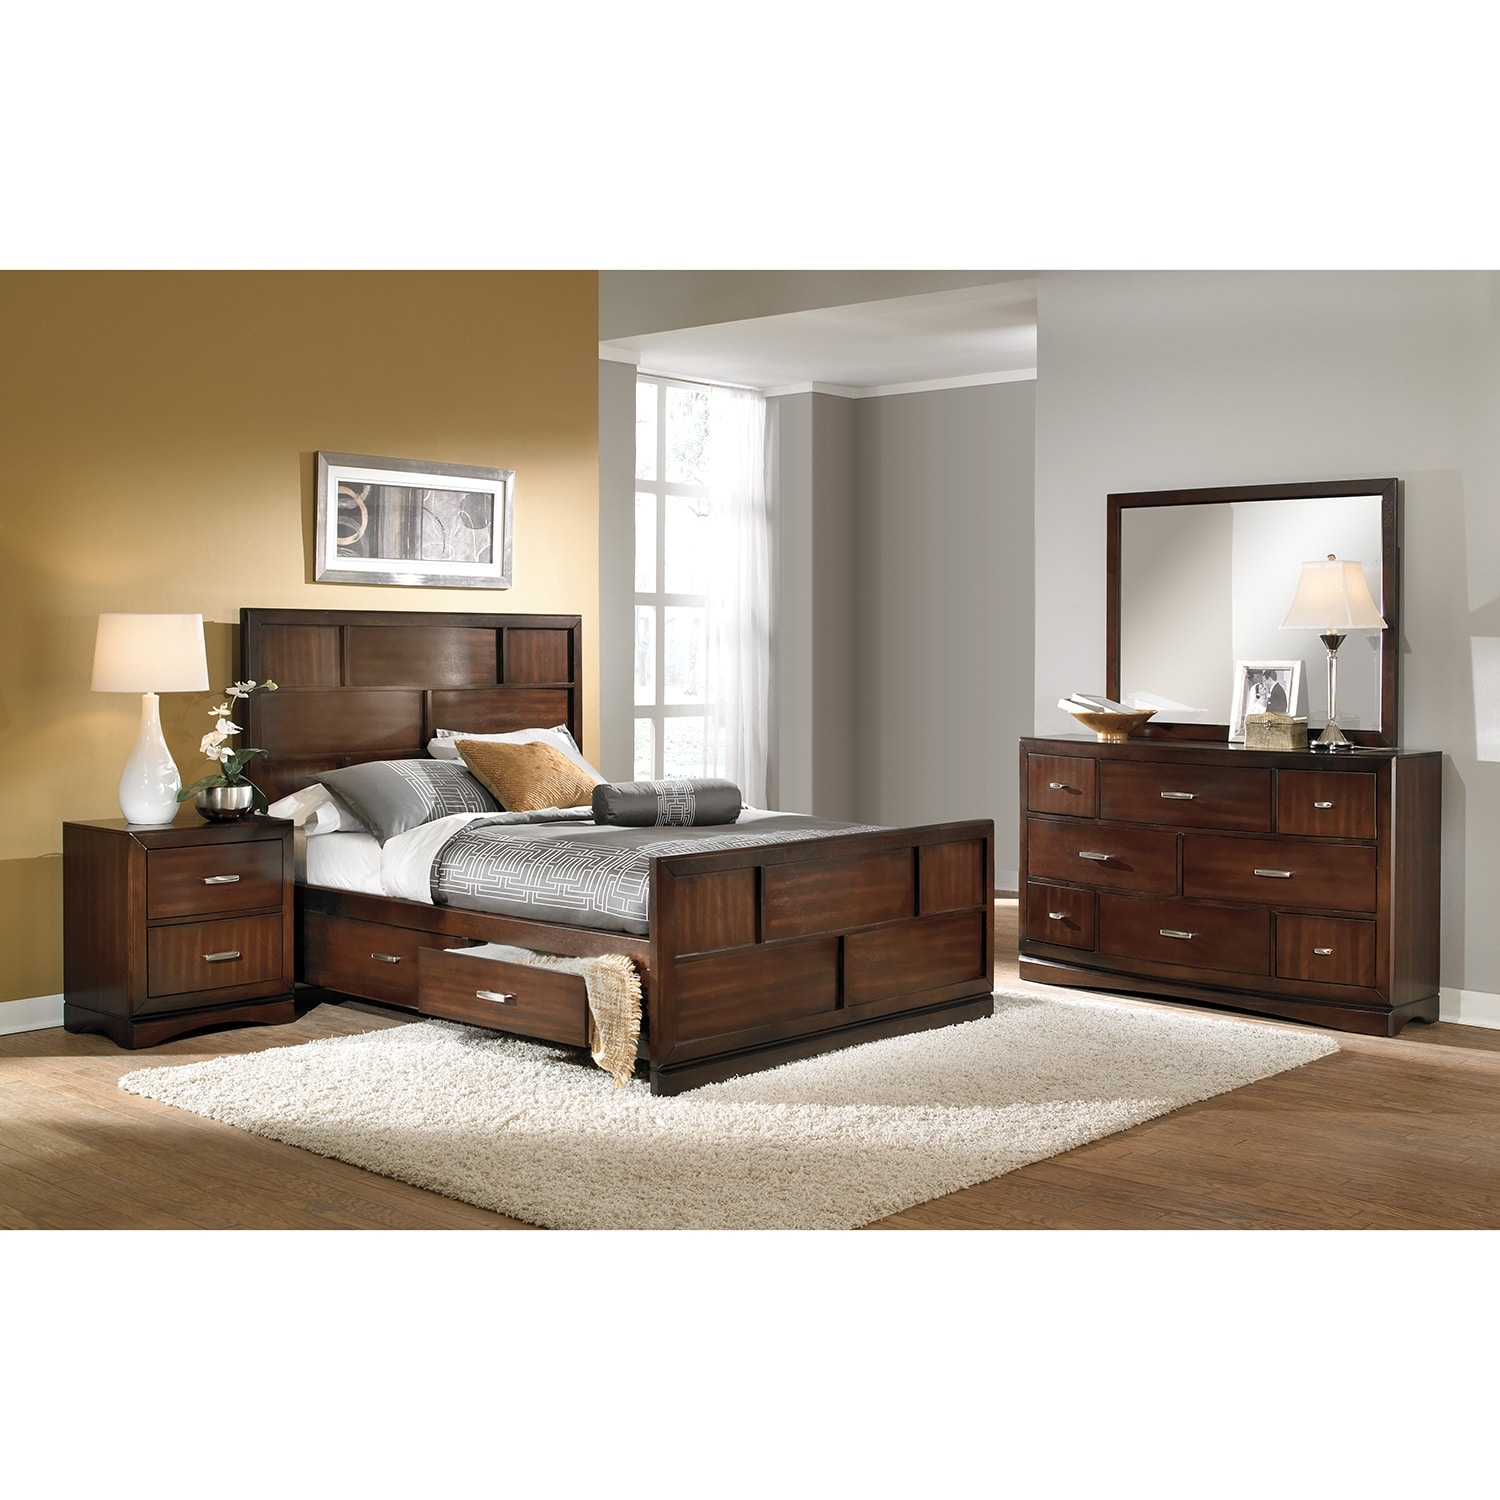 Bedroom Furniture - Toronto 6-Piece Queen Storage Bedroom Set - Pecan